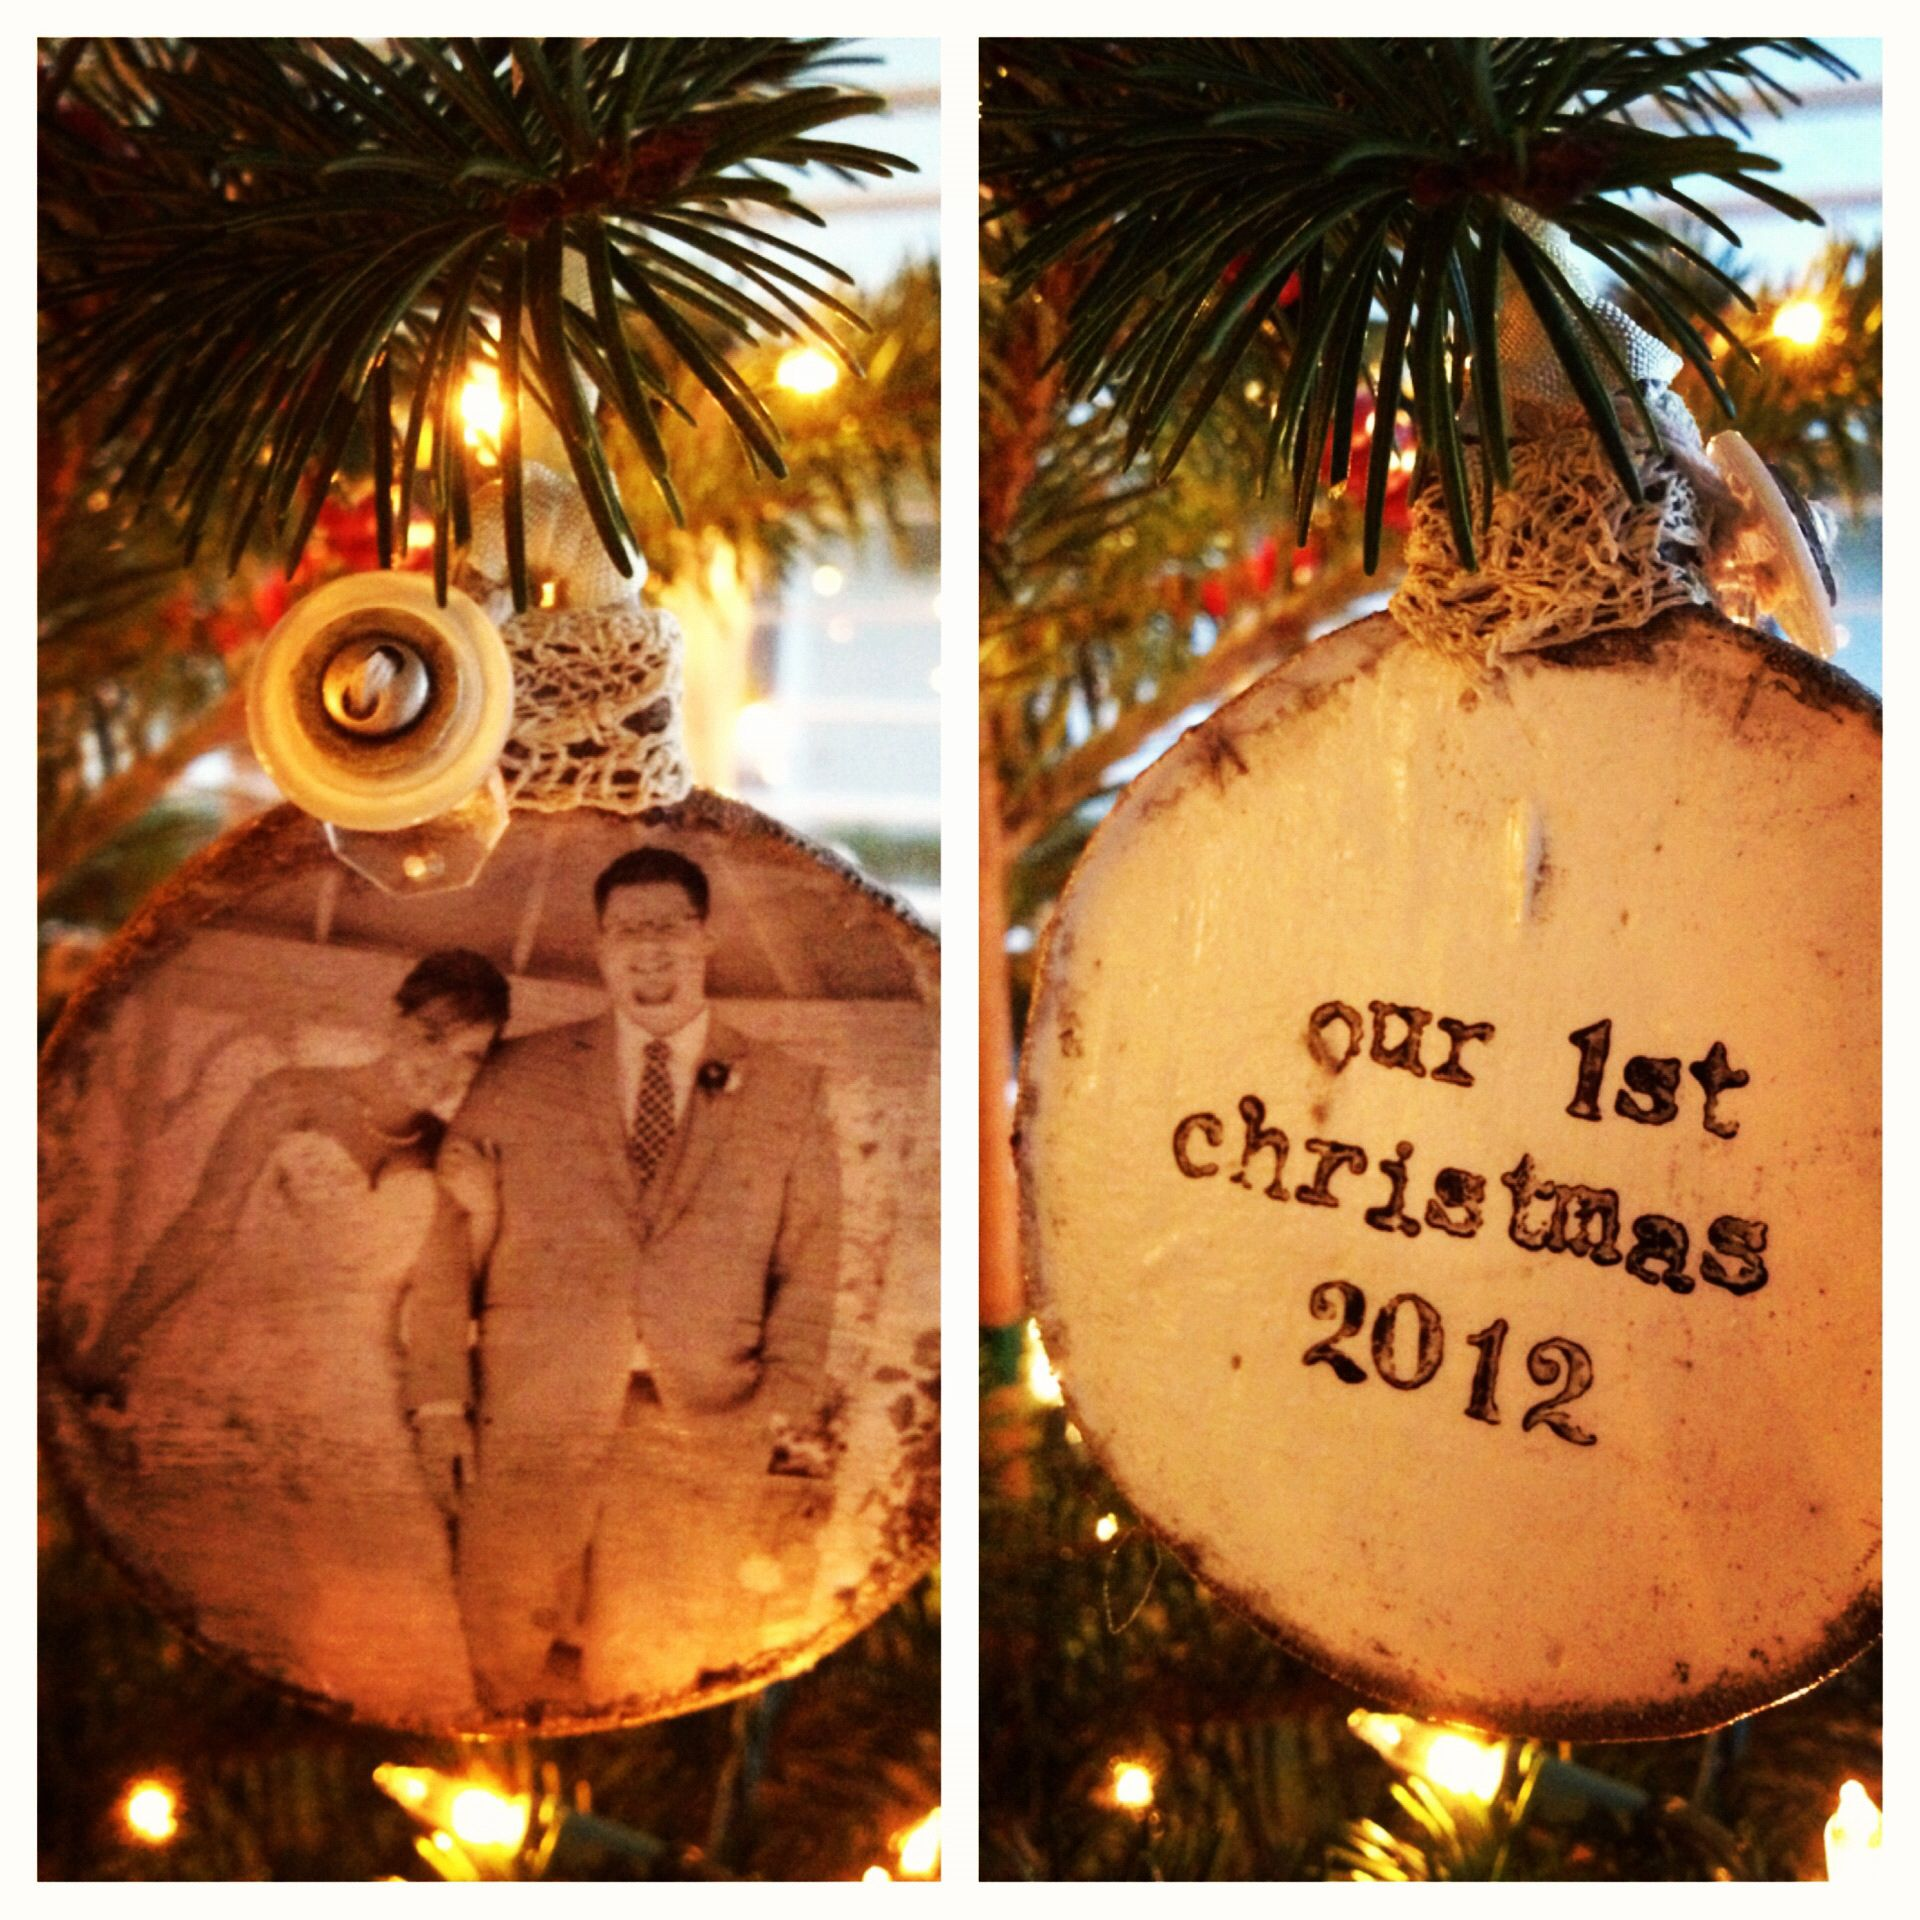 Diy christmas ornaments for newlyweds - Diy Mod Podge Ceramic Christmas Ornament Firstyear Newlywed Firstchristmas